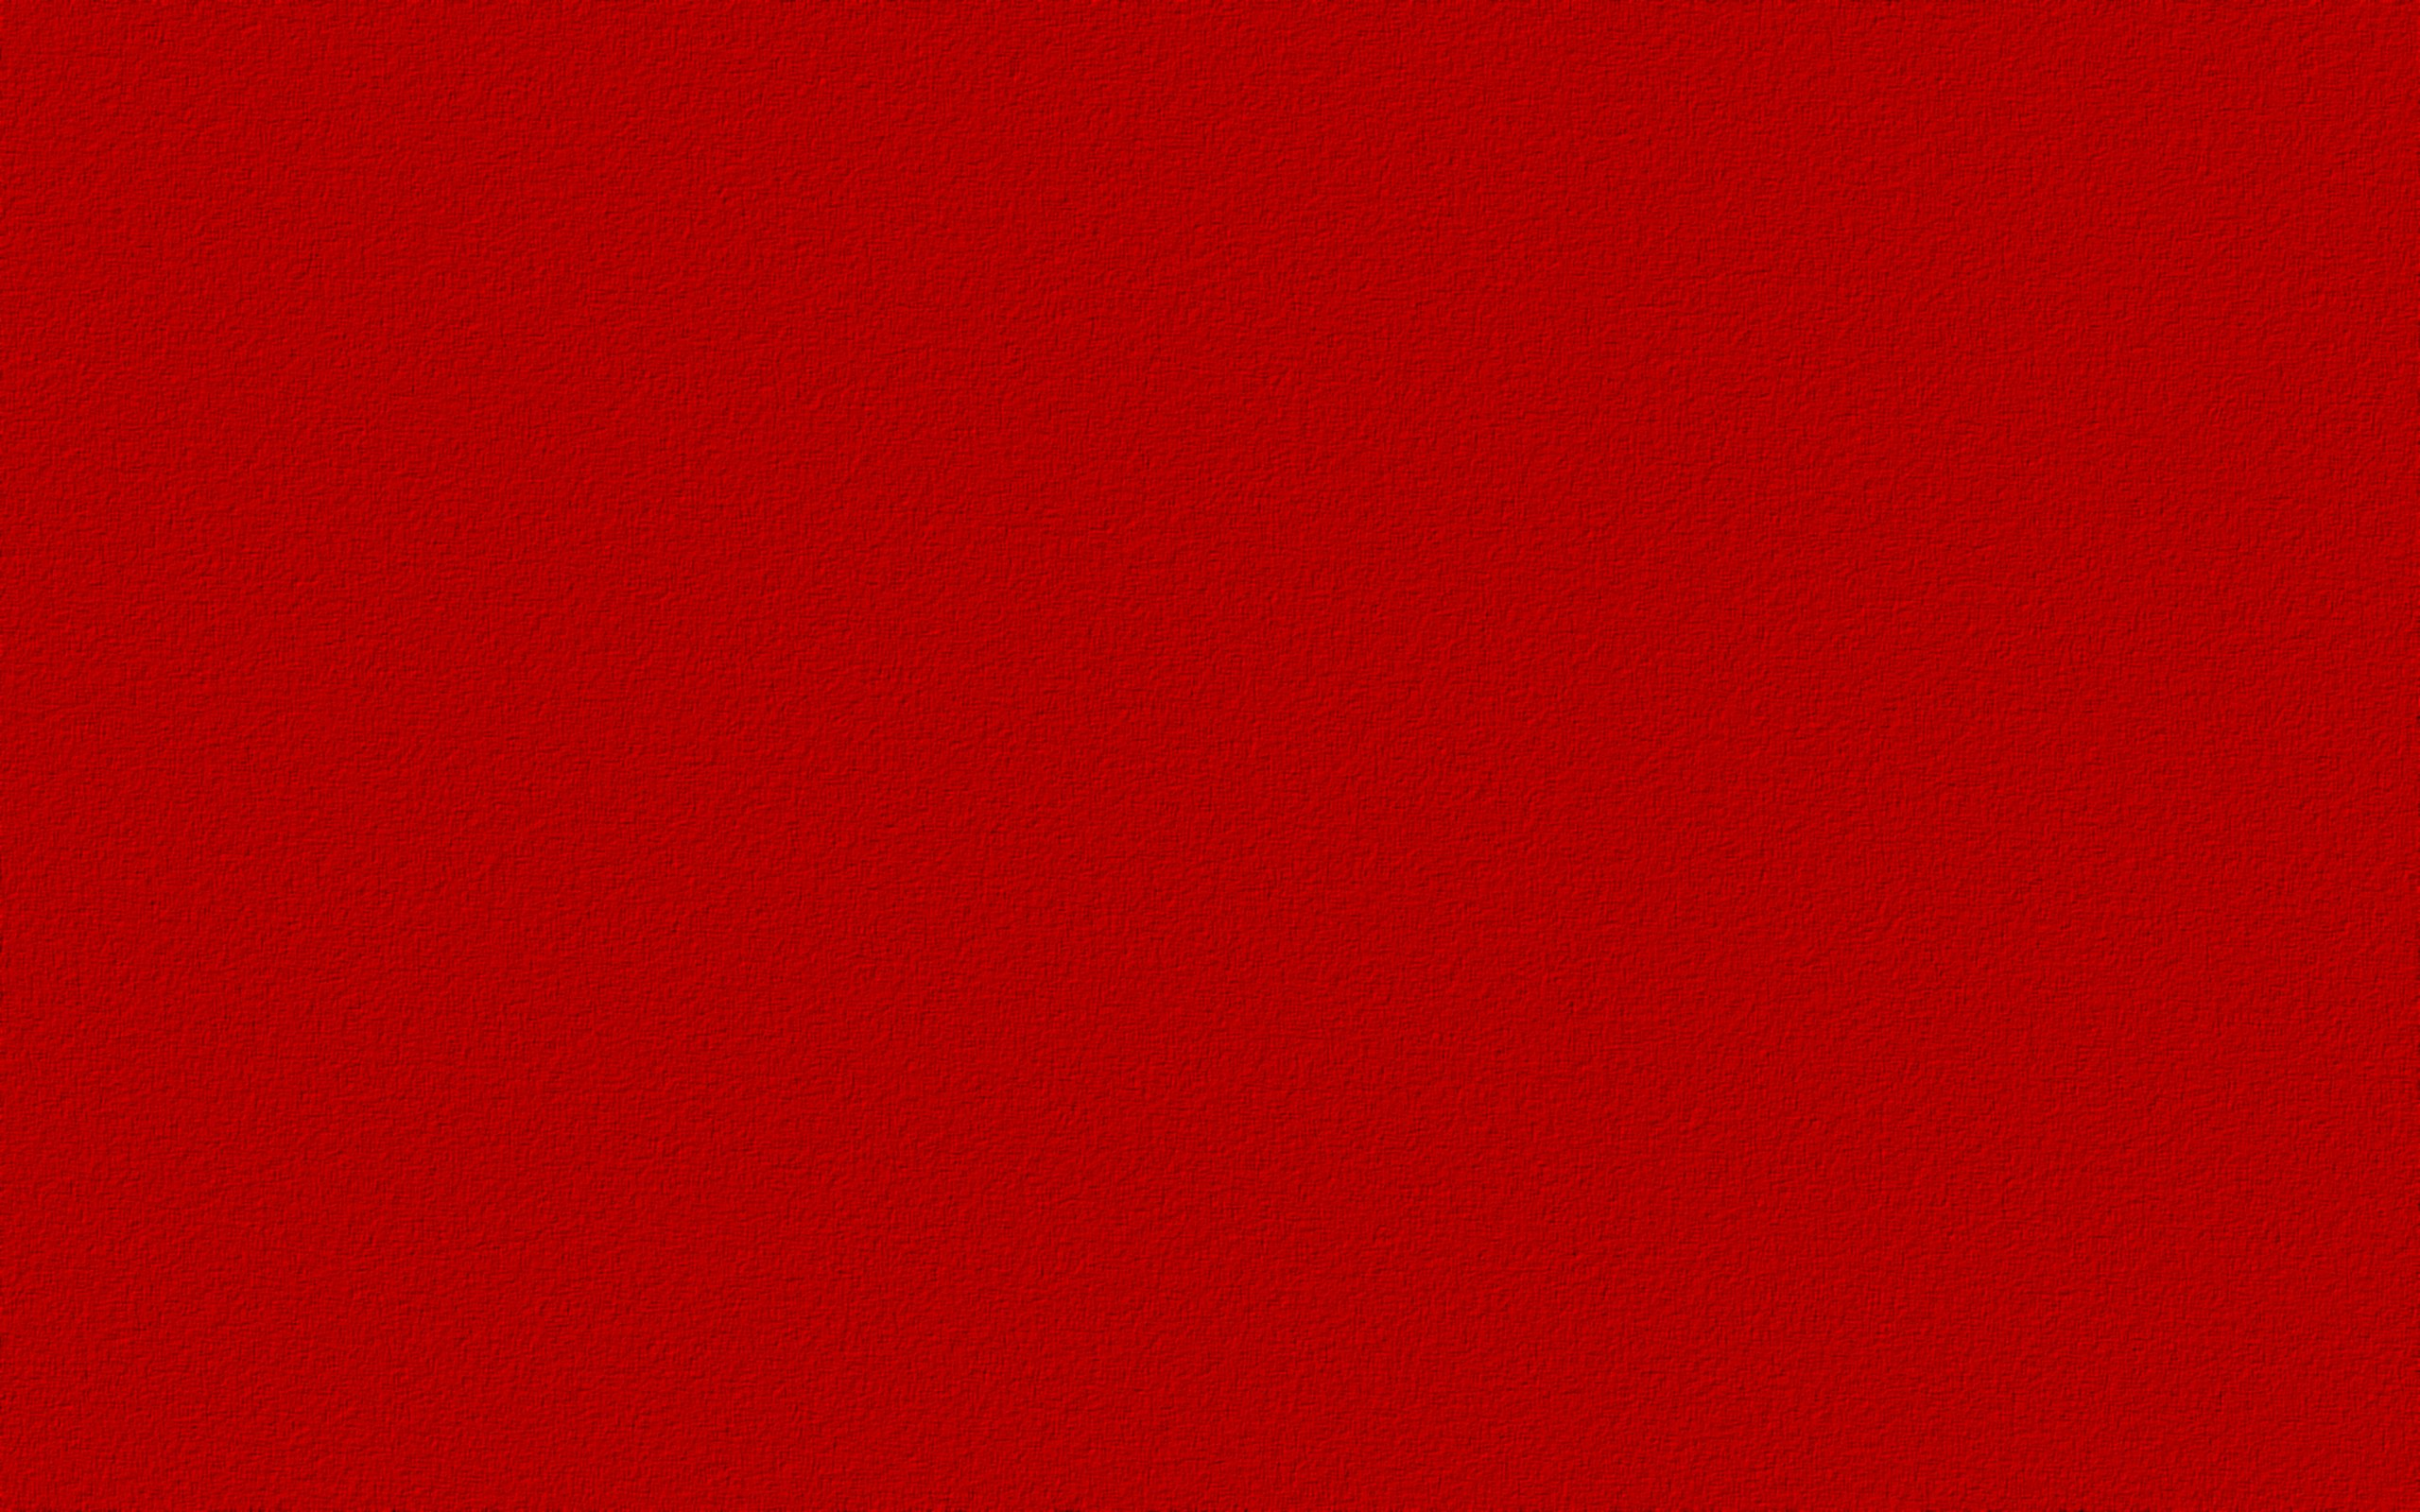 red-08